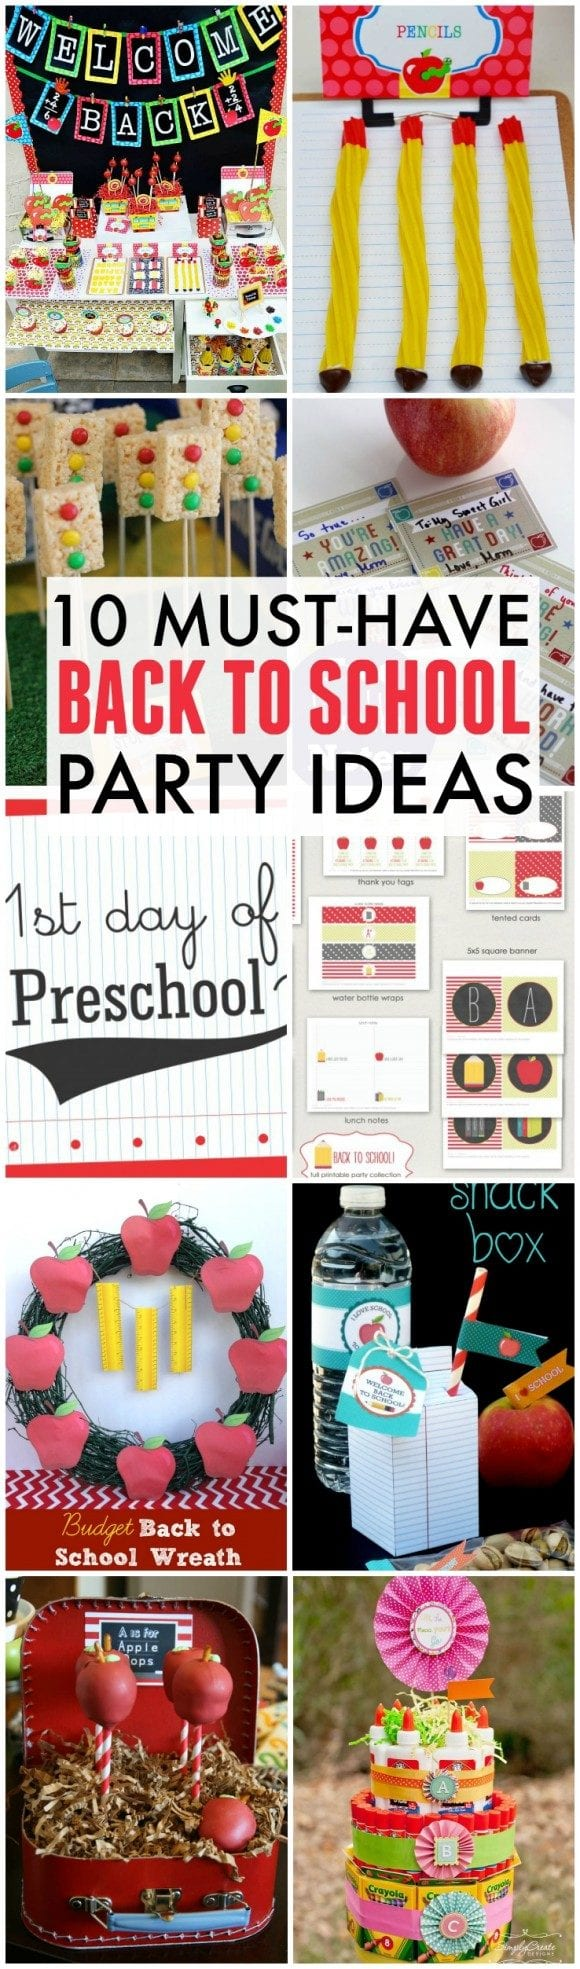 10 Must Have Back-To-School Party Ideas | CatchMyParty.com